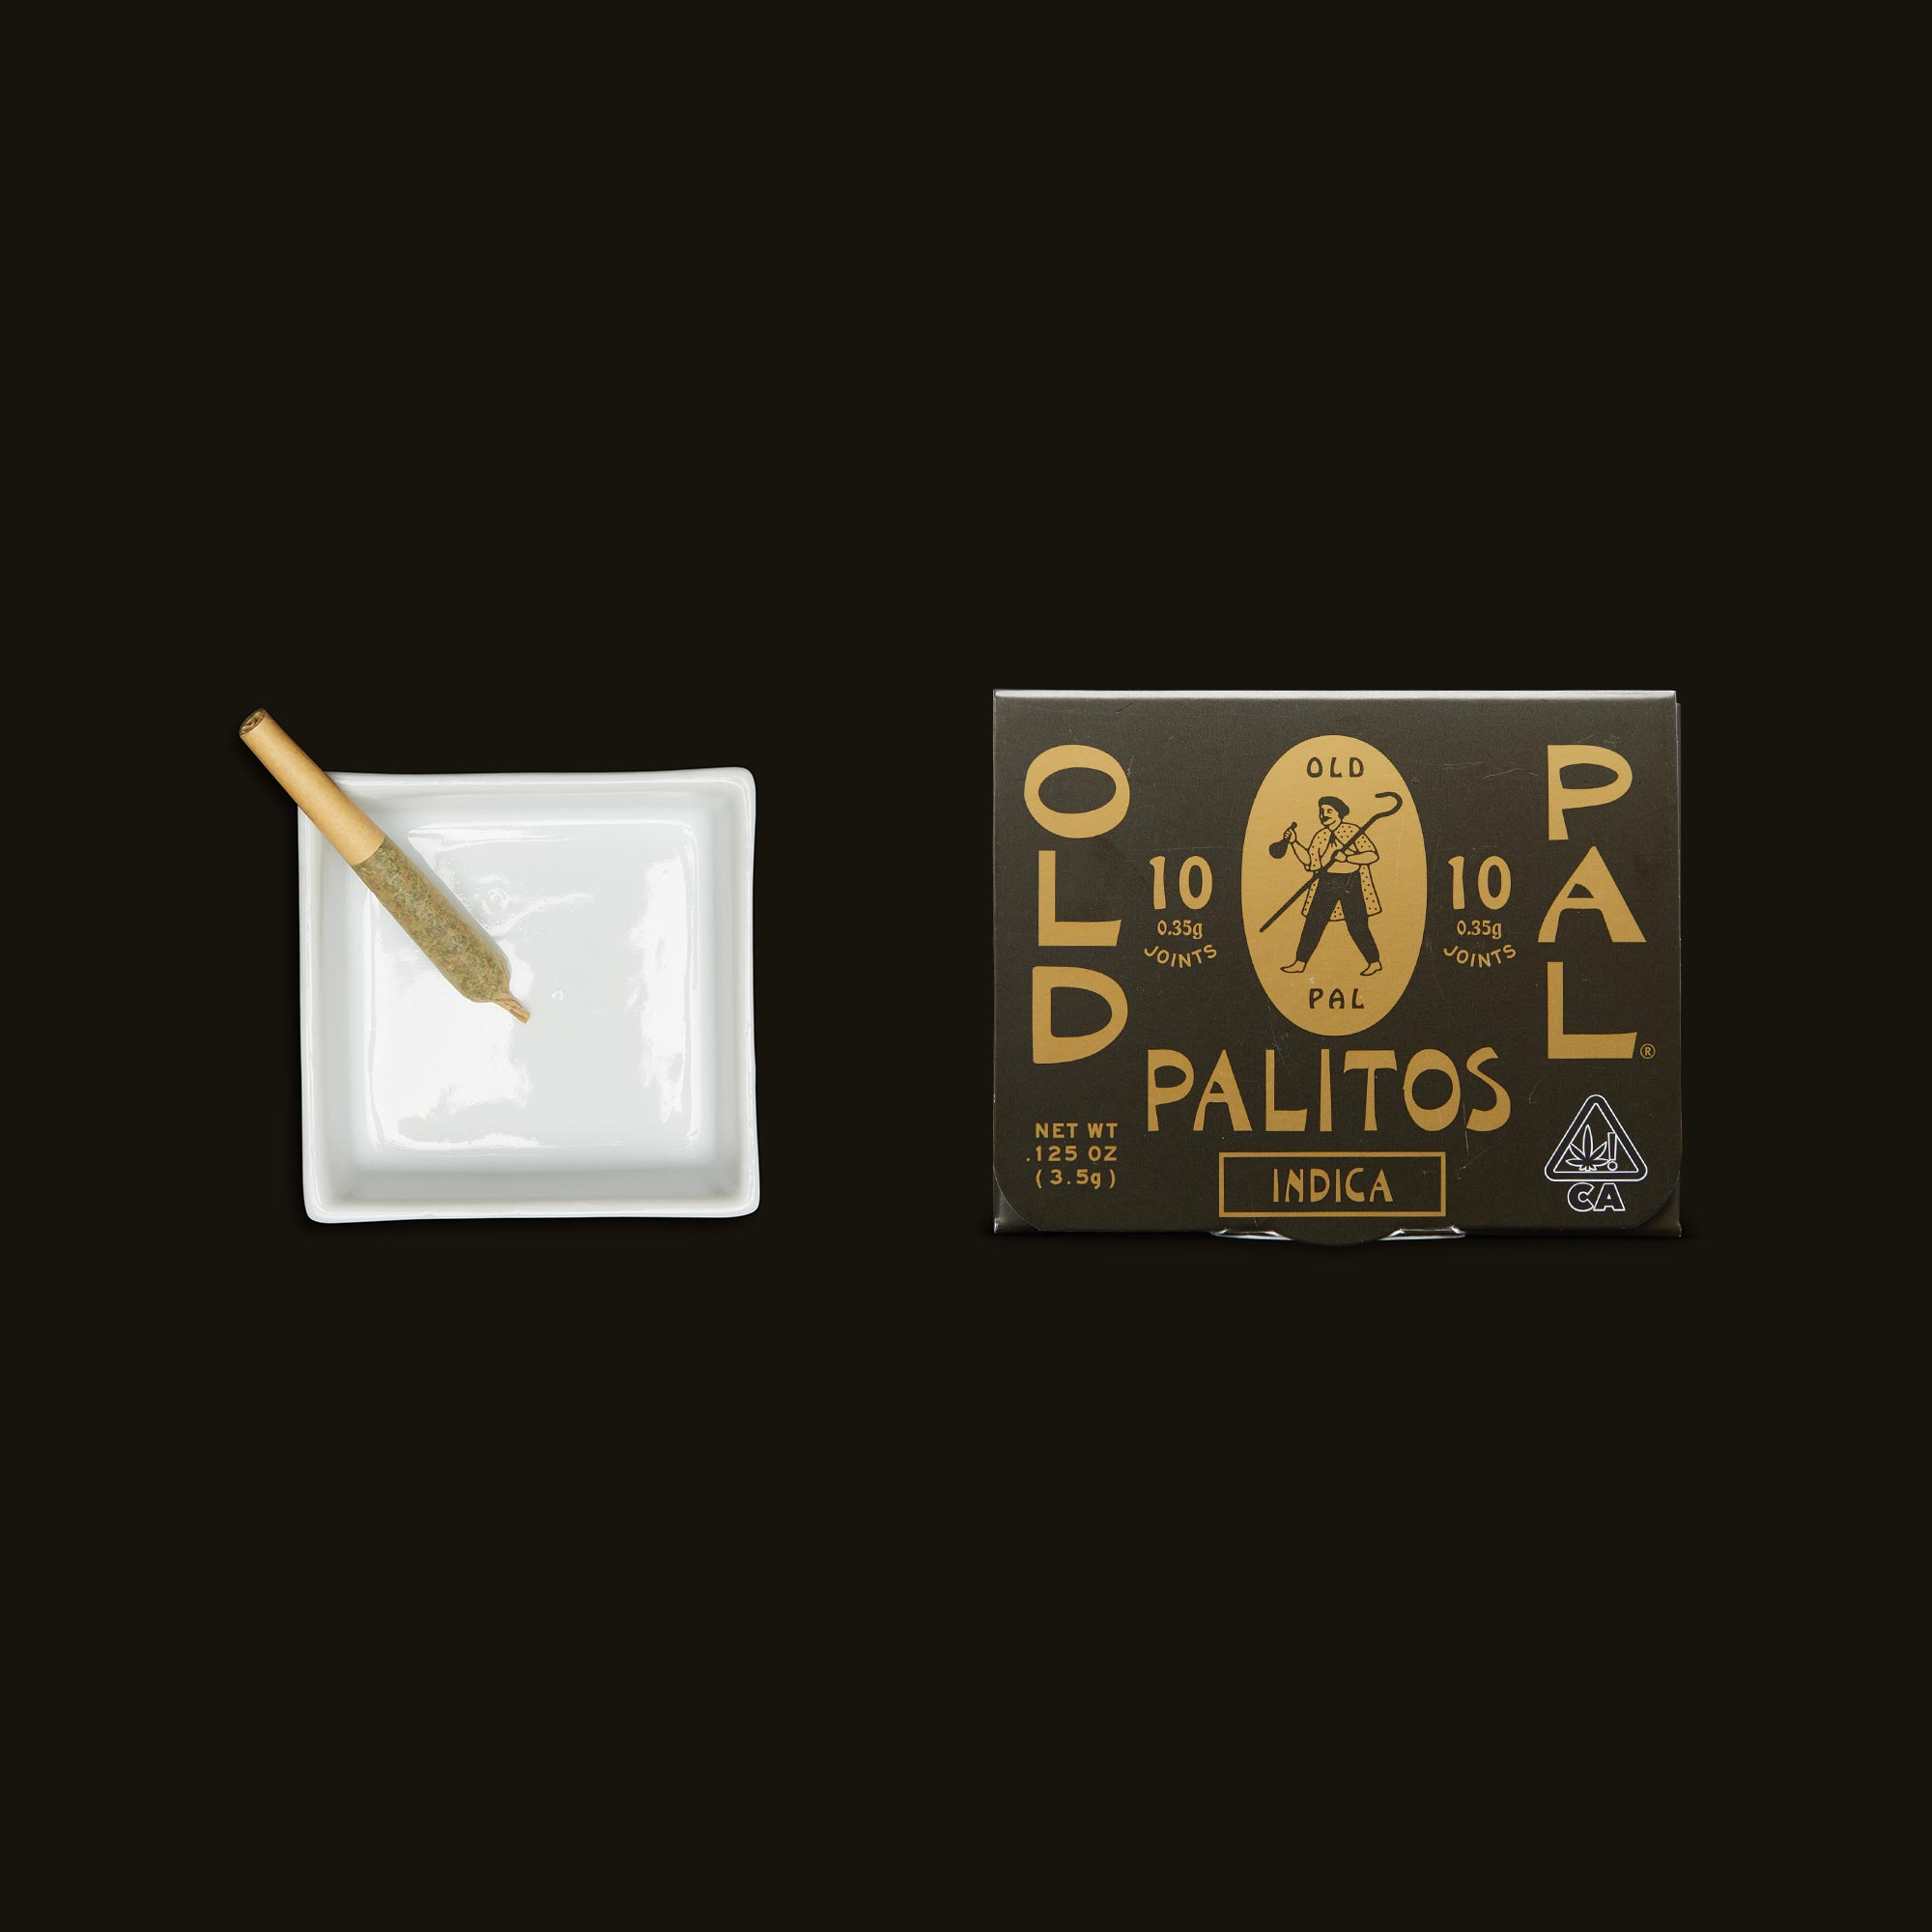 OLD PAL Palitos Indica Pre-Rolls